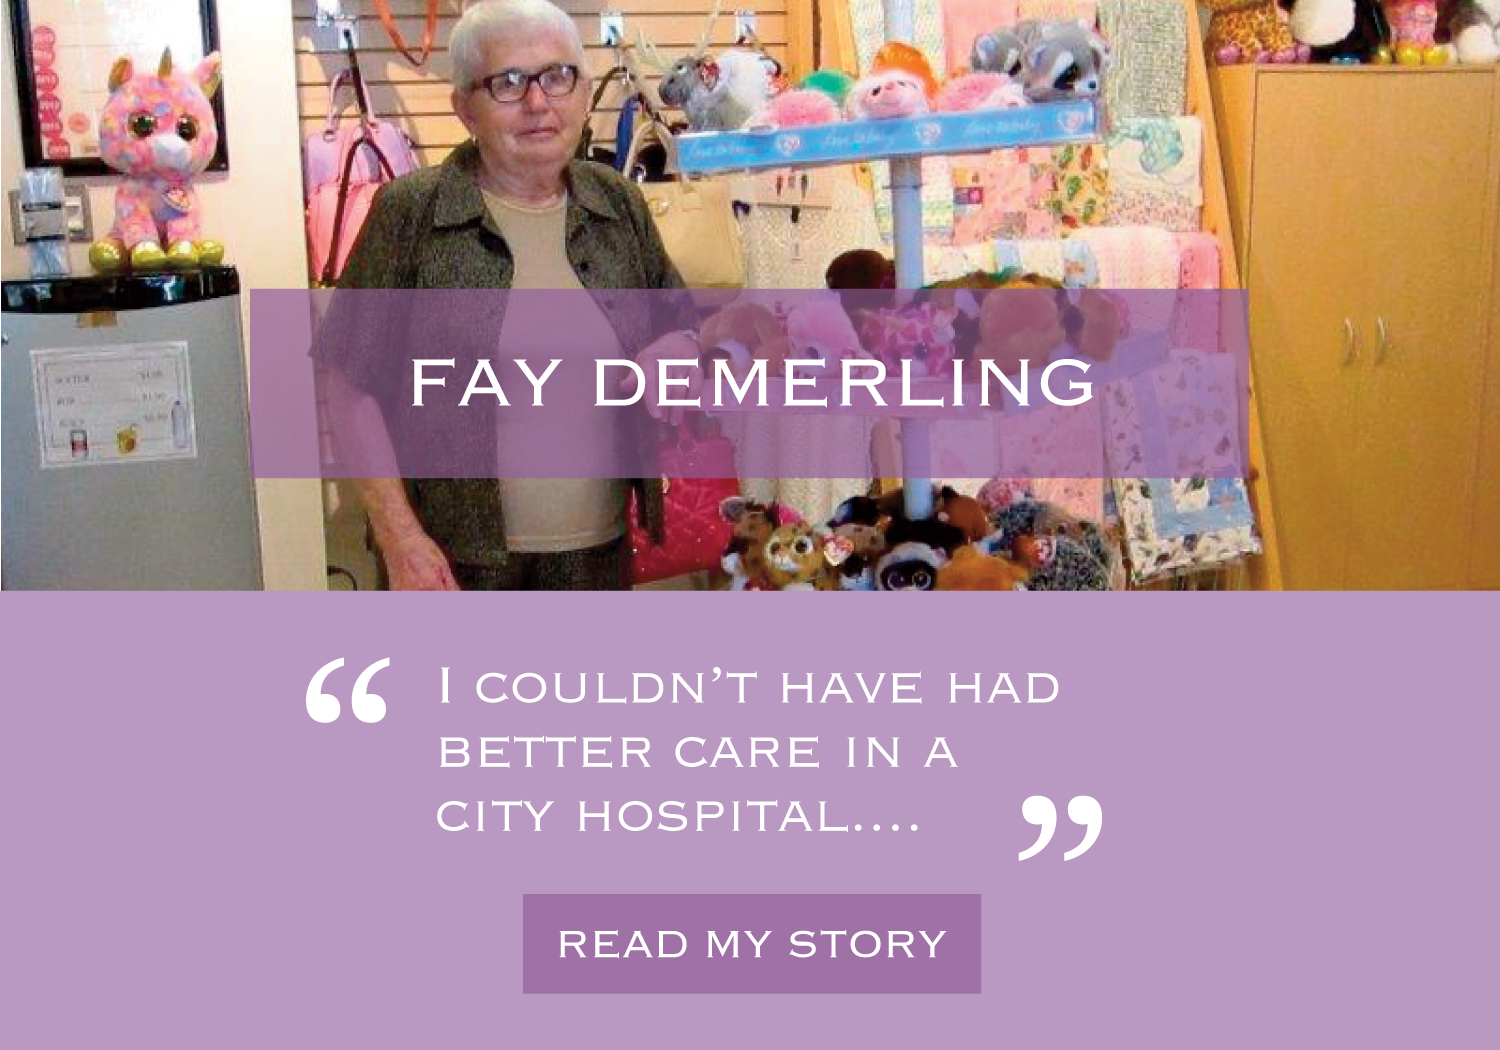 WDHF_STORY_FAY DEMERLING.png